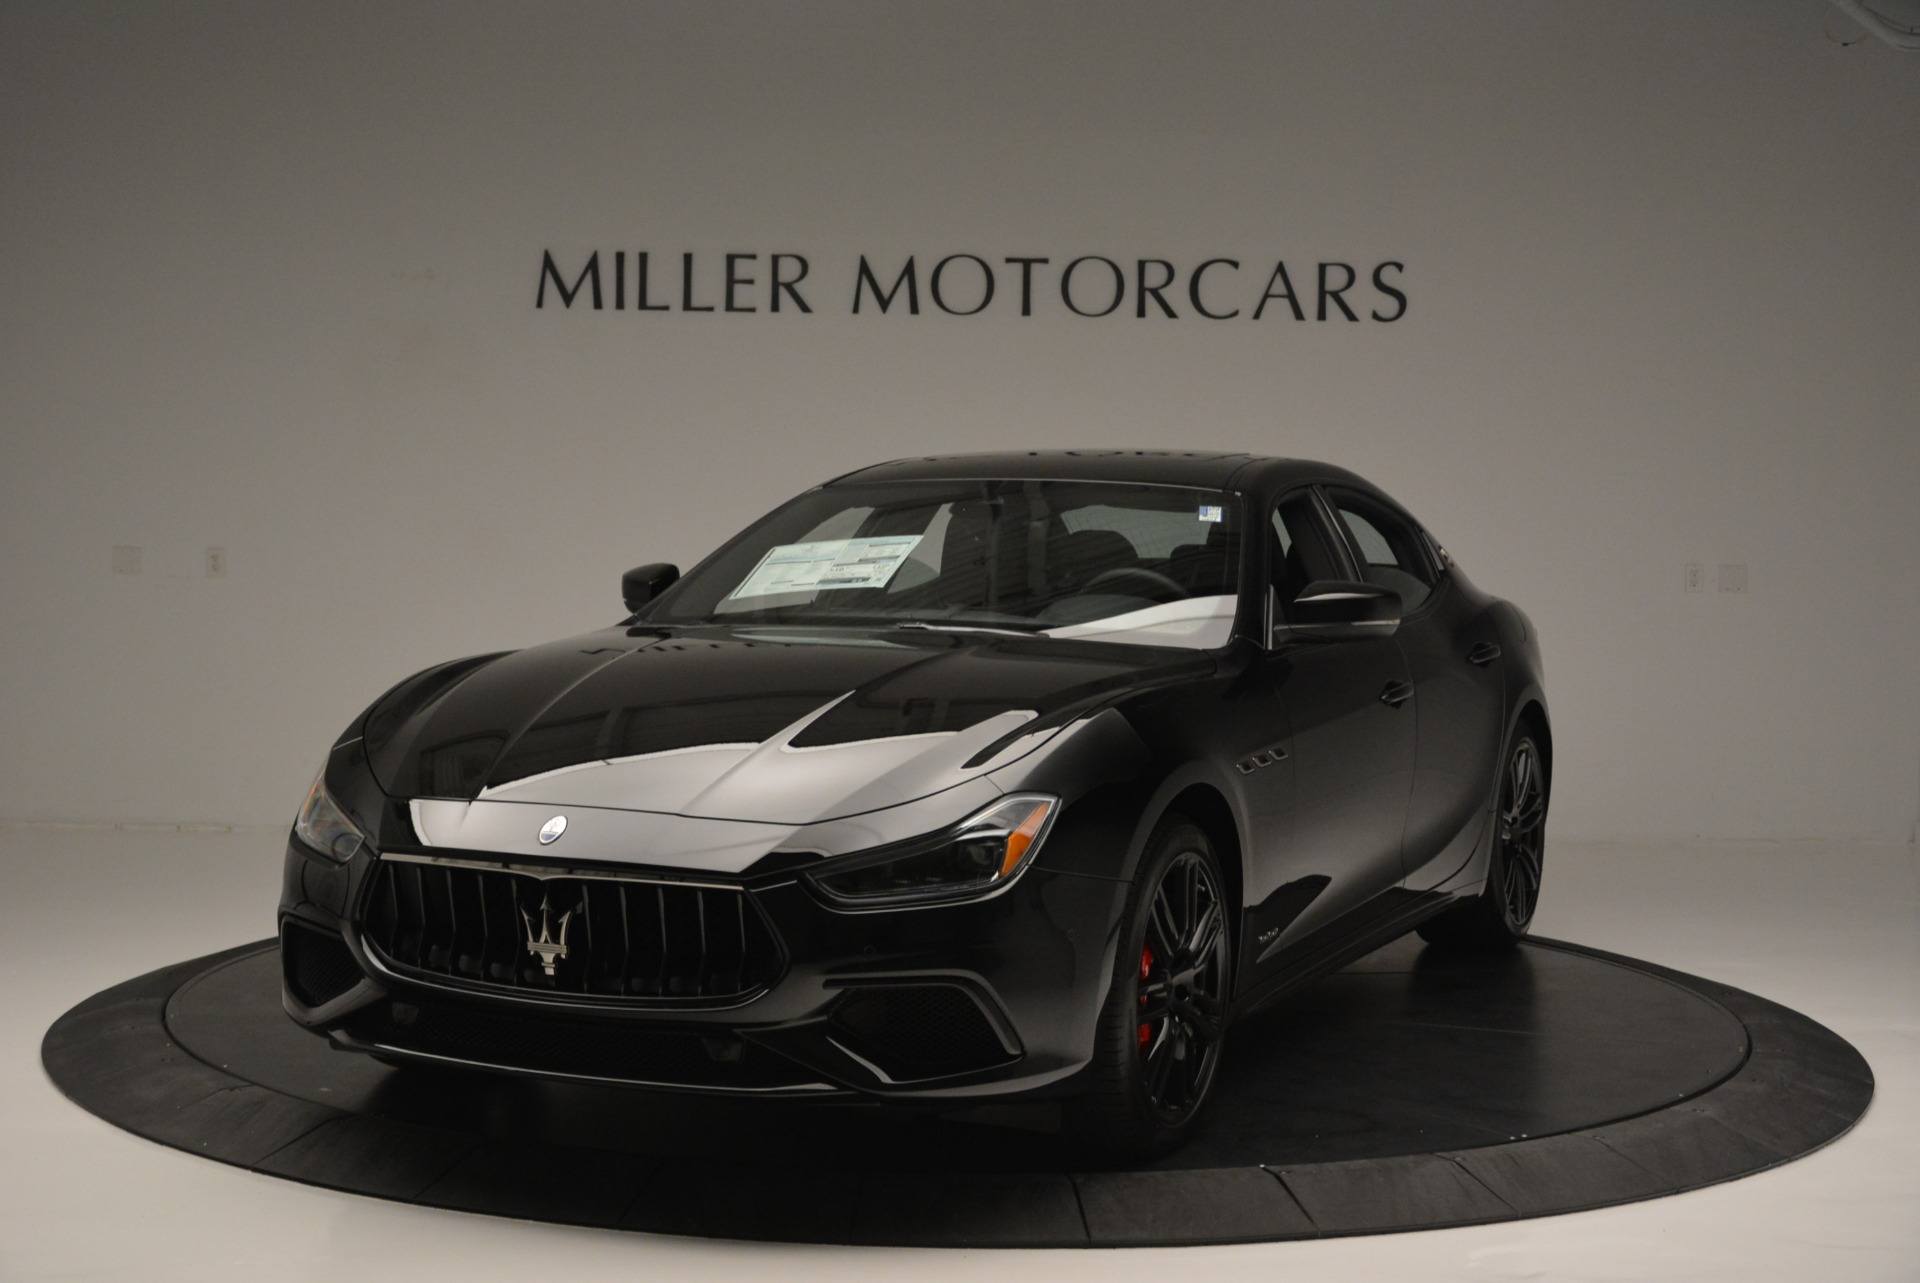 New 2018 Maserati Ghibli SQ4 GranSport Nerissimo for sale Sold at Bentley Greenwich in Greenwich CT 06830 1